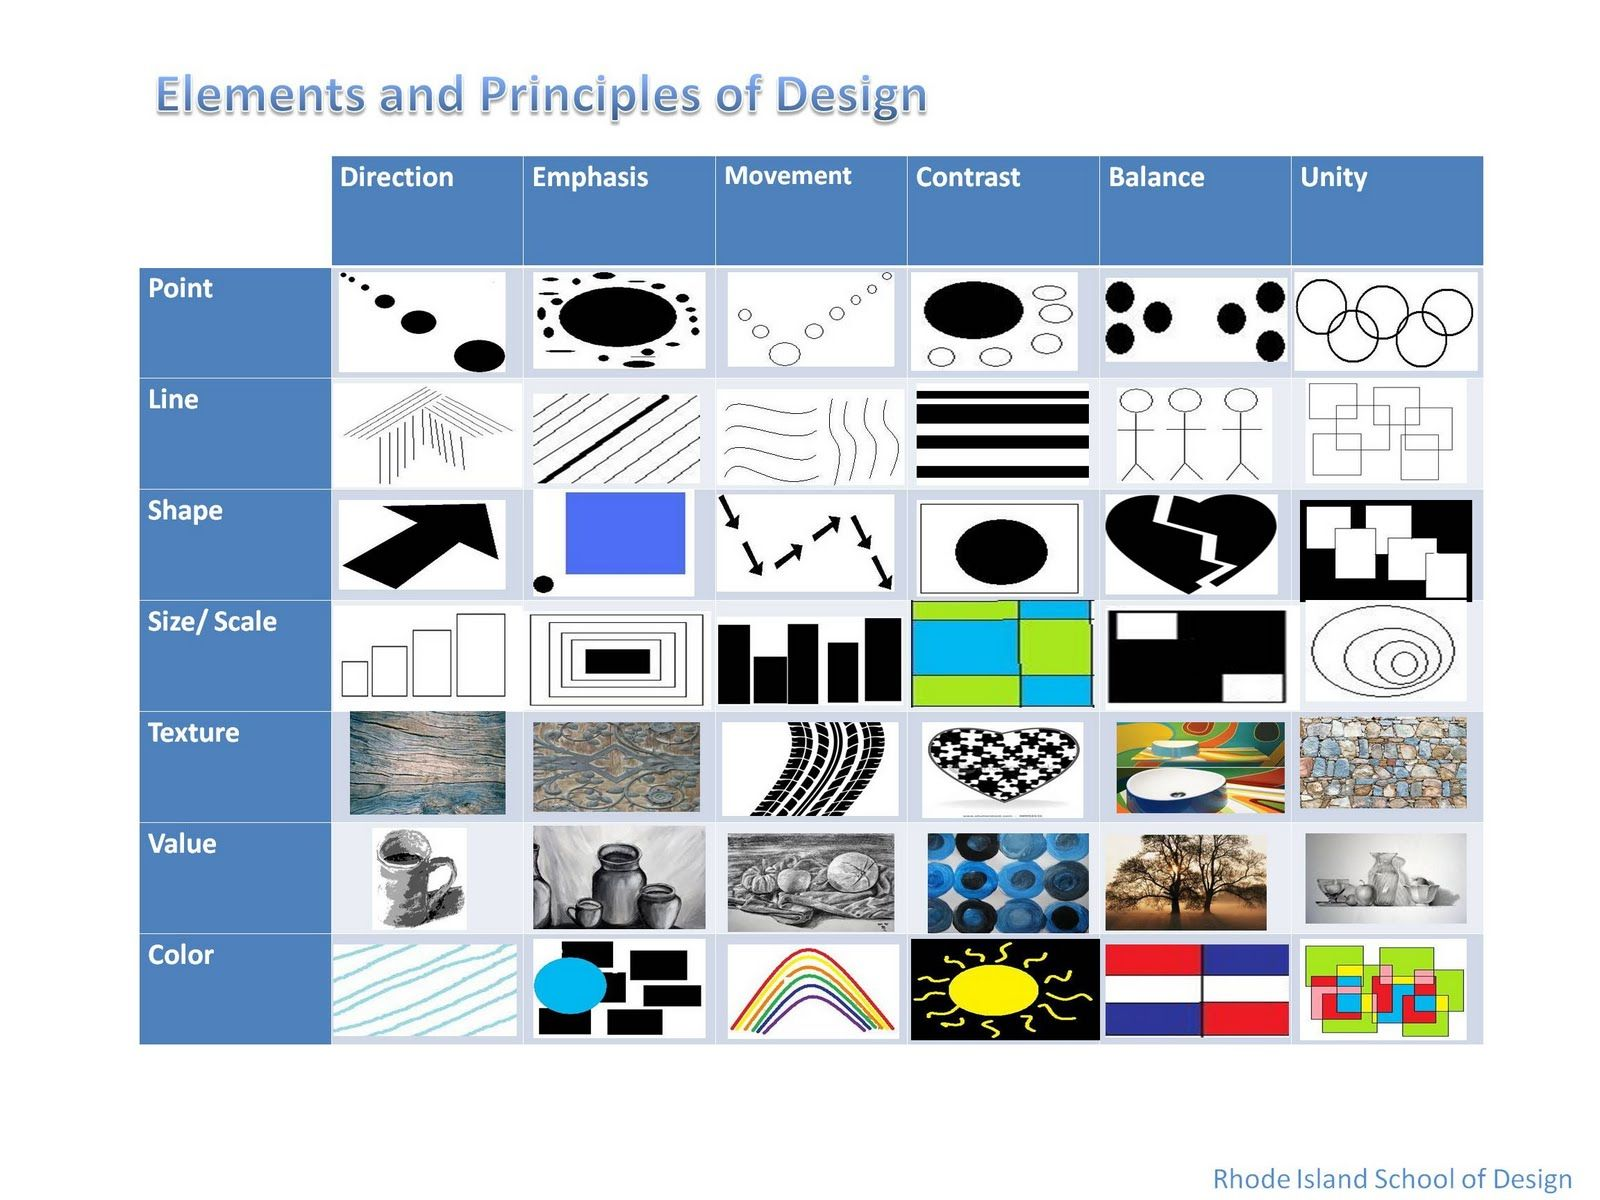 17 Best images about Art - Elements and principles of design on ...